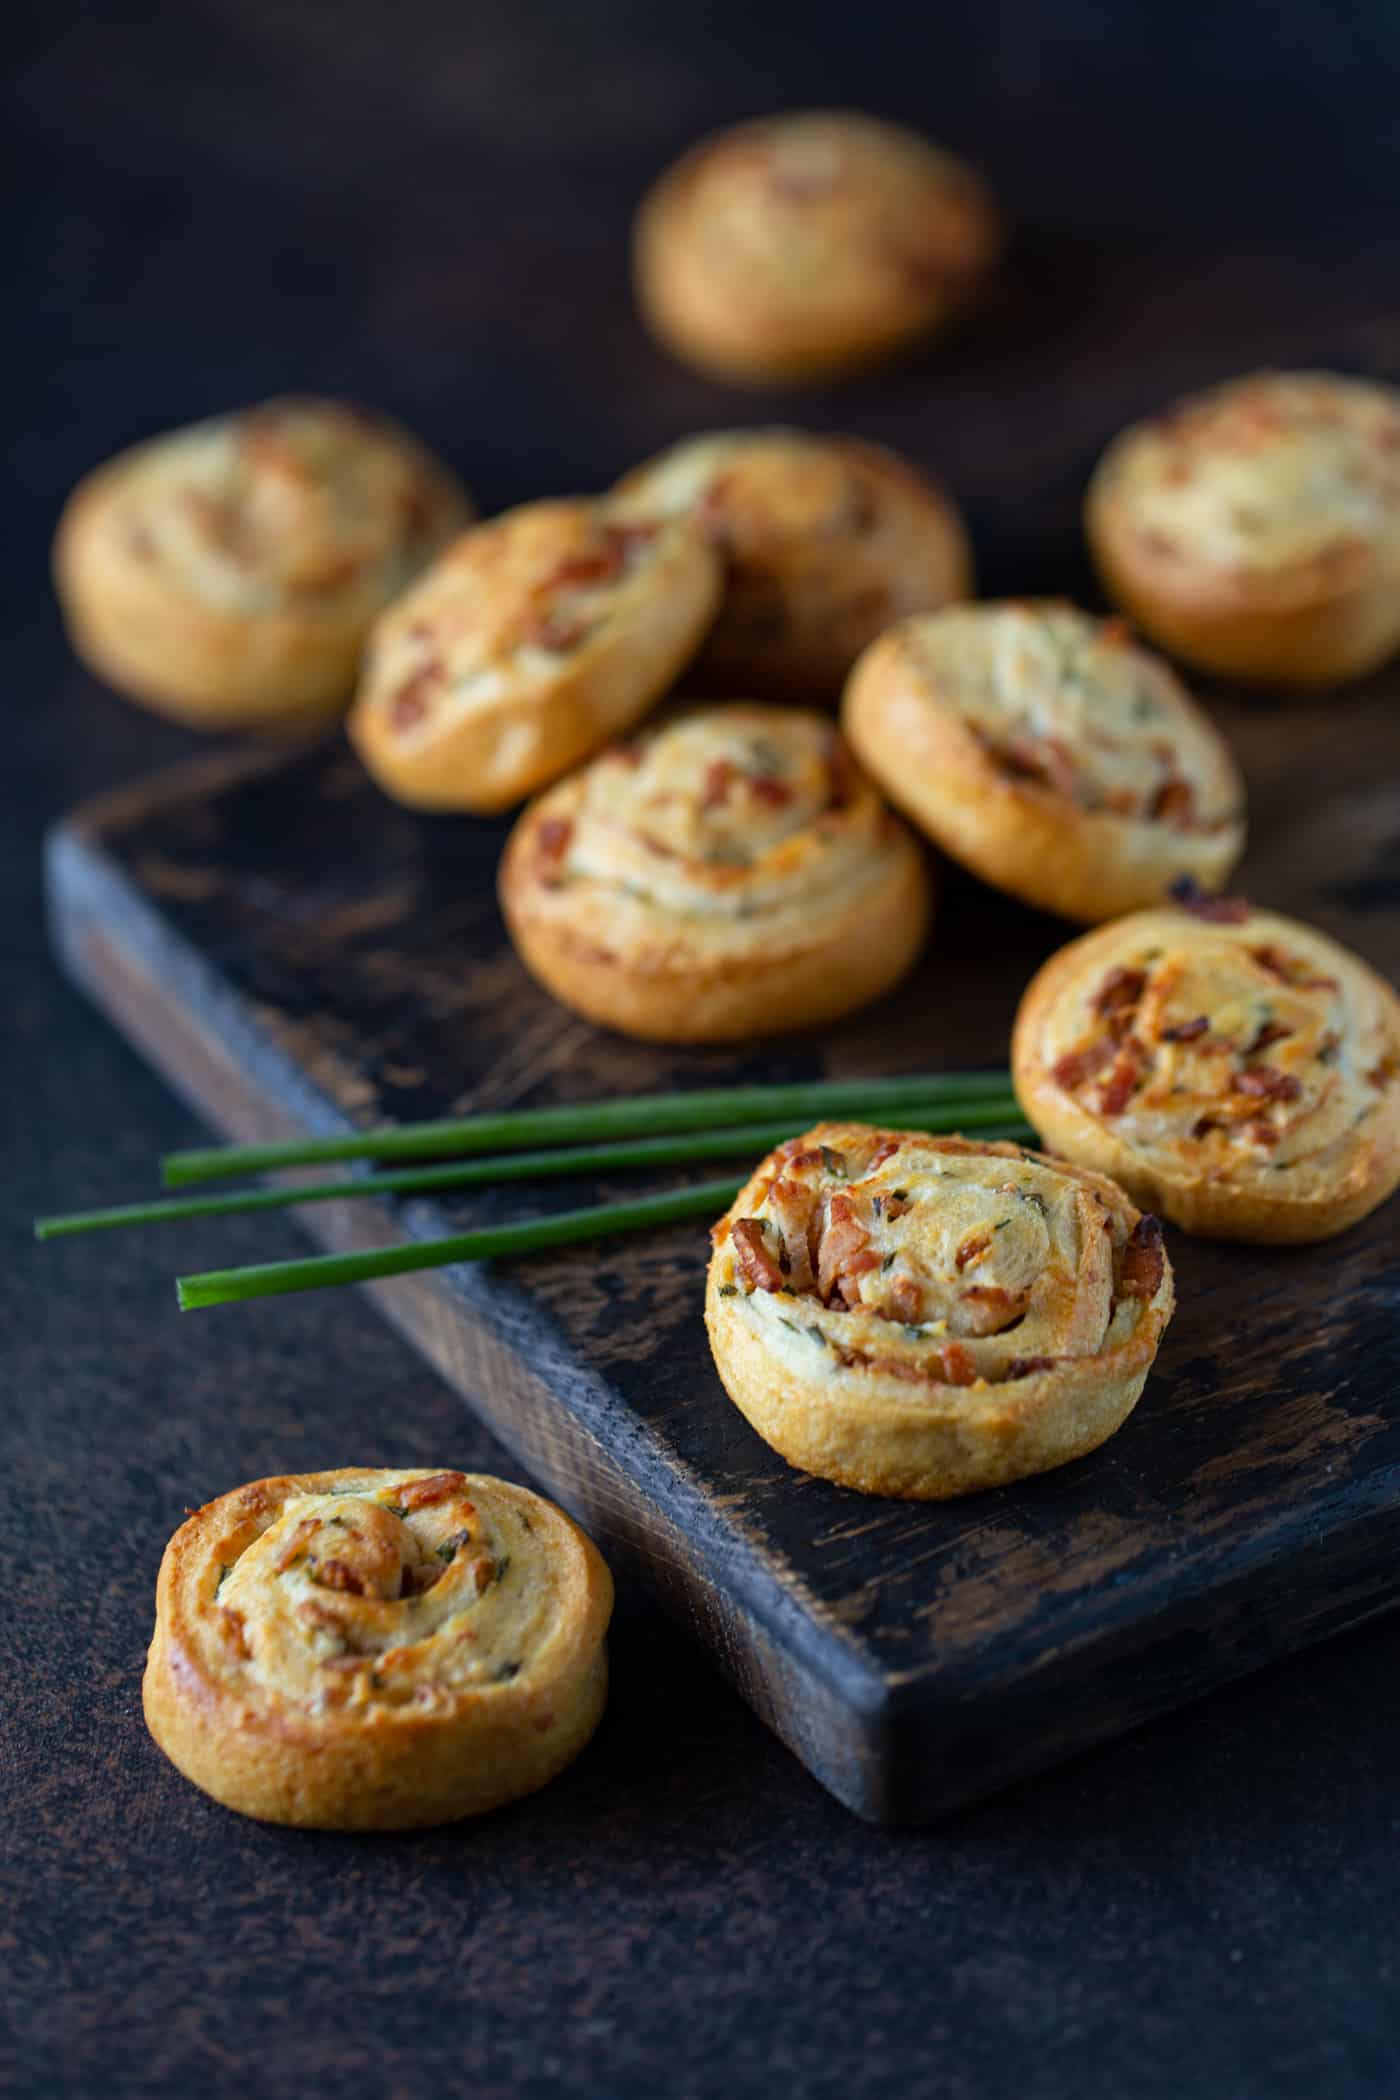 Bacon Cream Cheese Crescent Roll Appetizers on a dark wooden cutting board. Garnished with fresh chives.